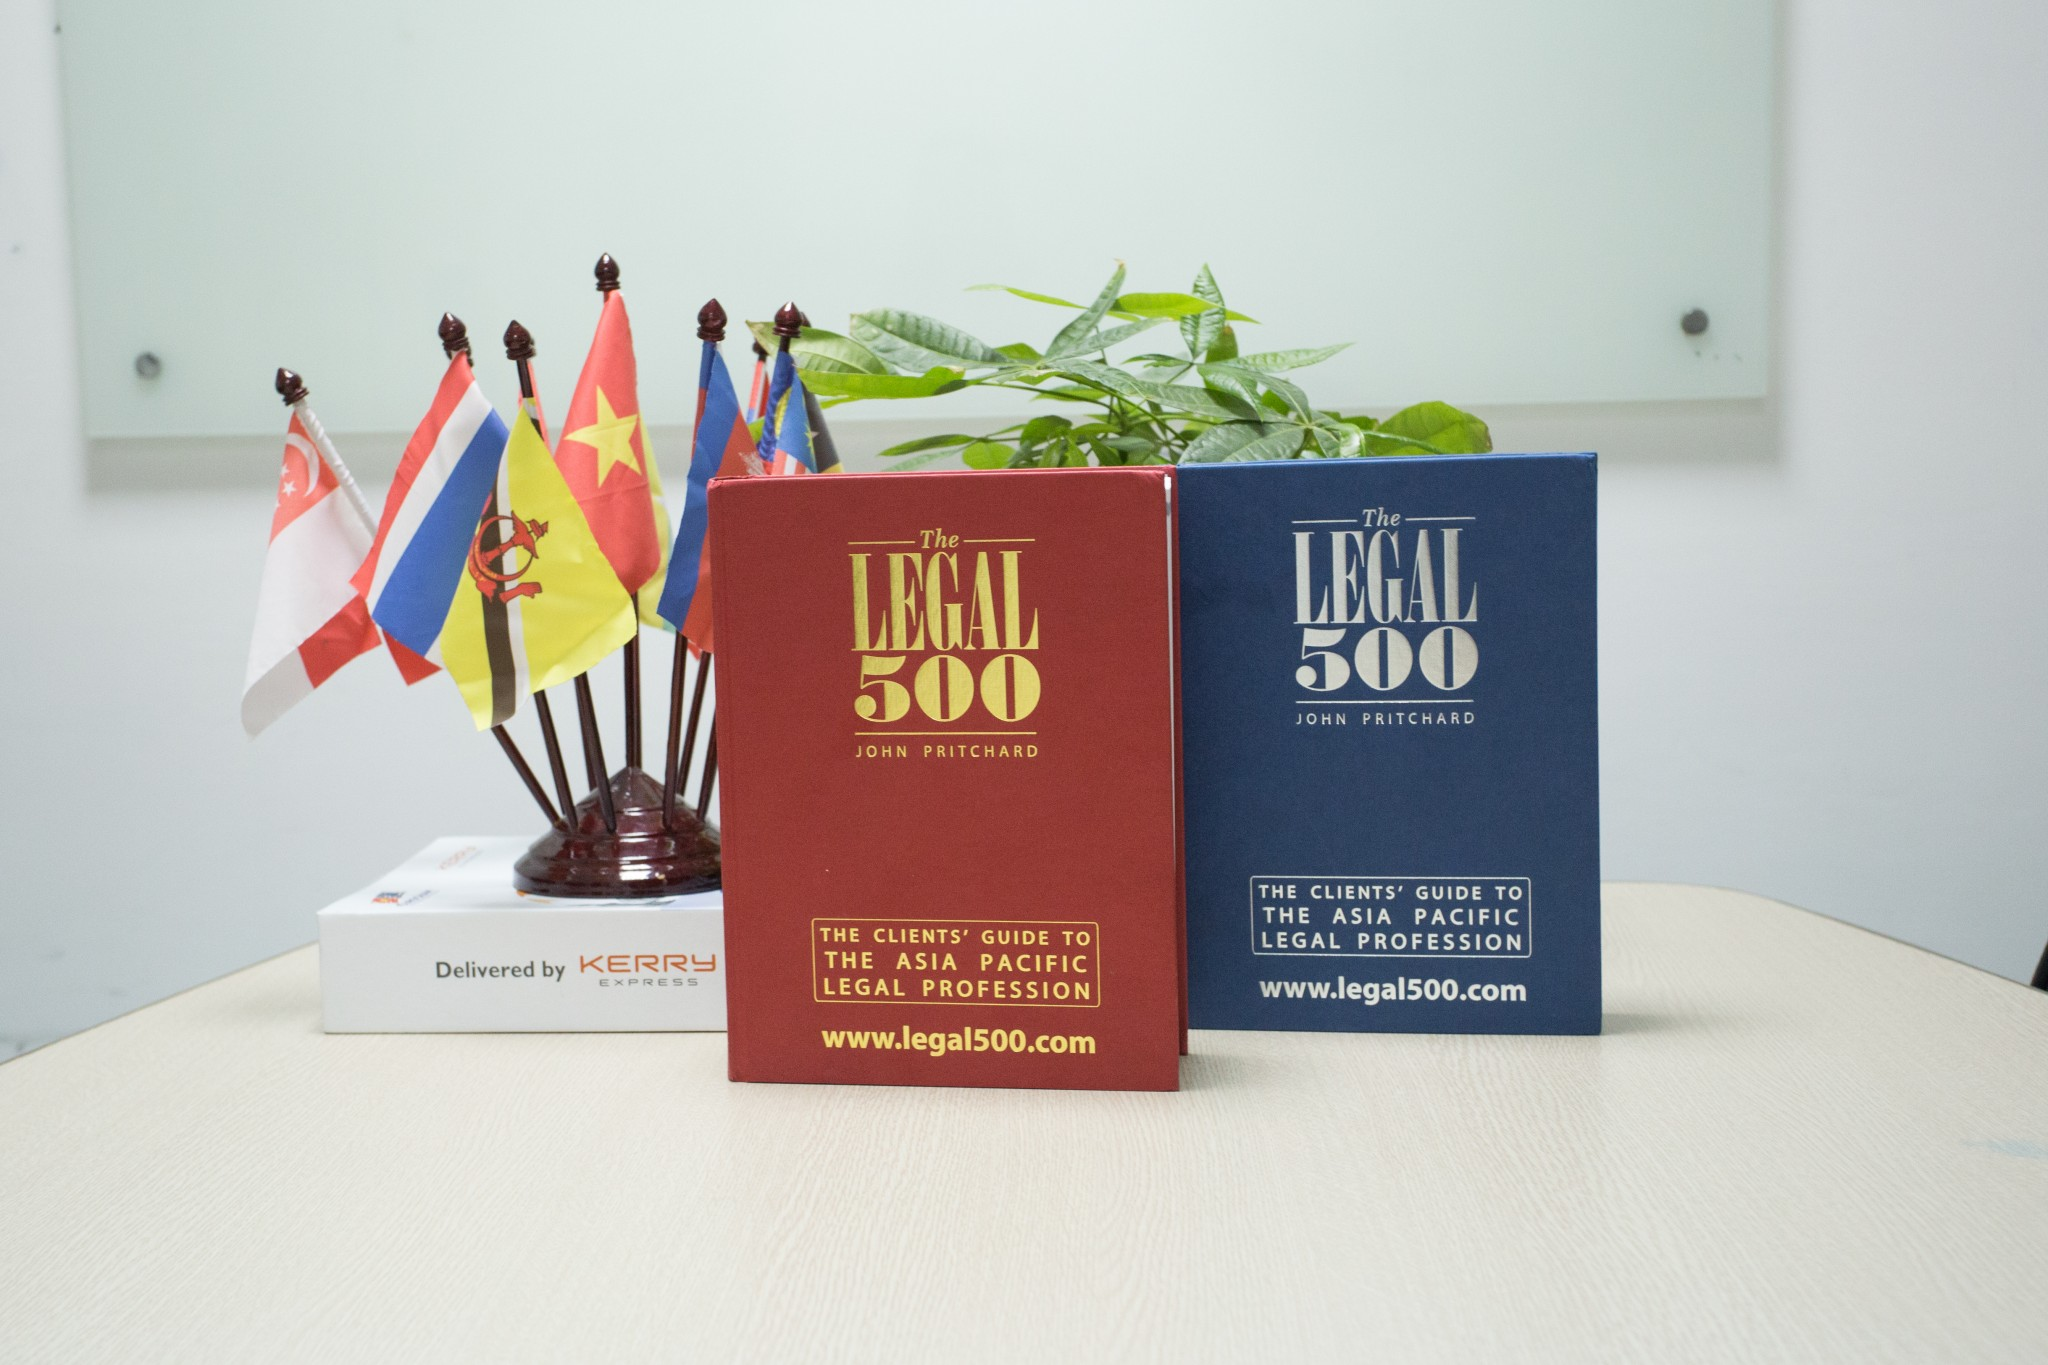 SBLAW was recommended by Legal 500 in the field of IP.